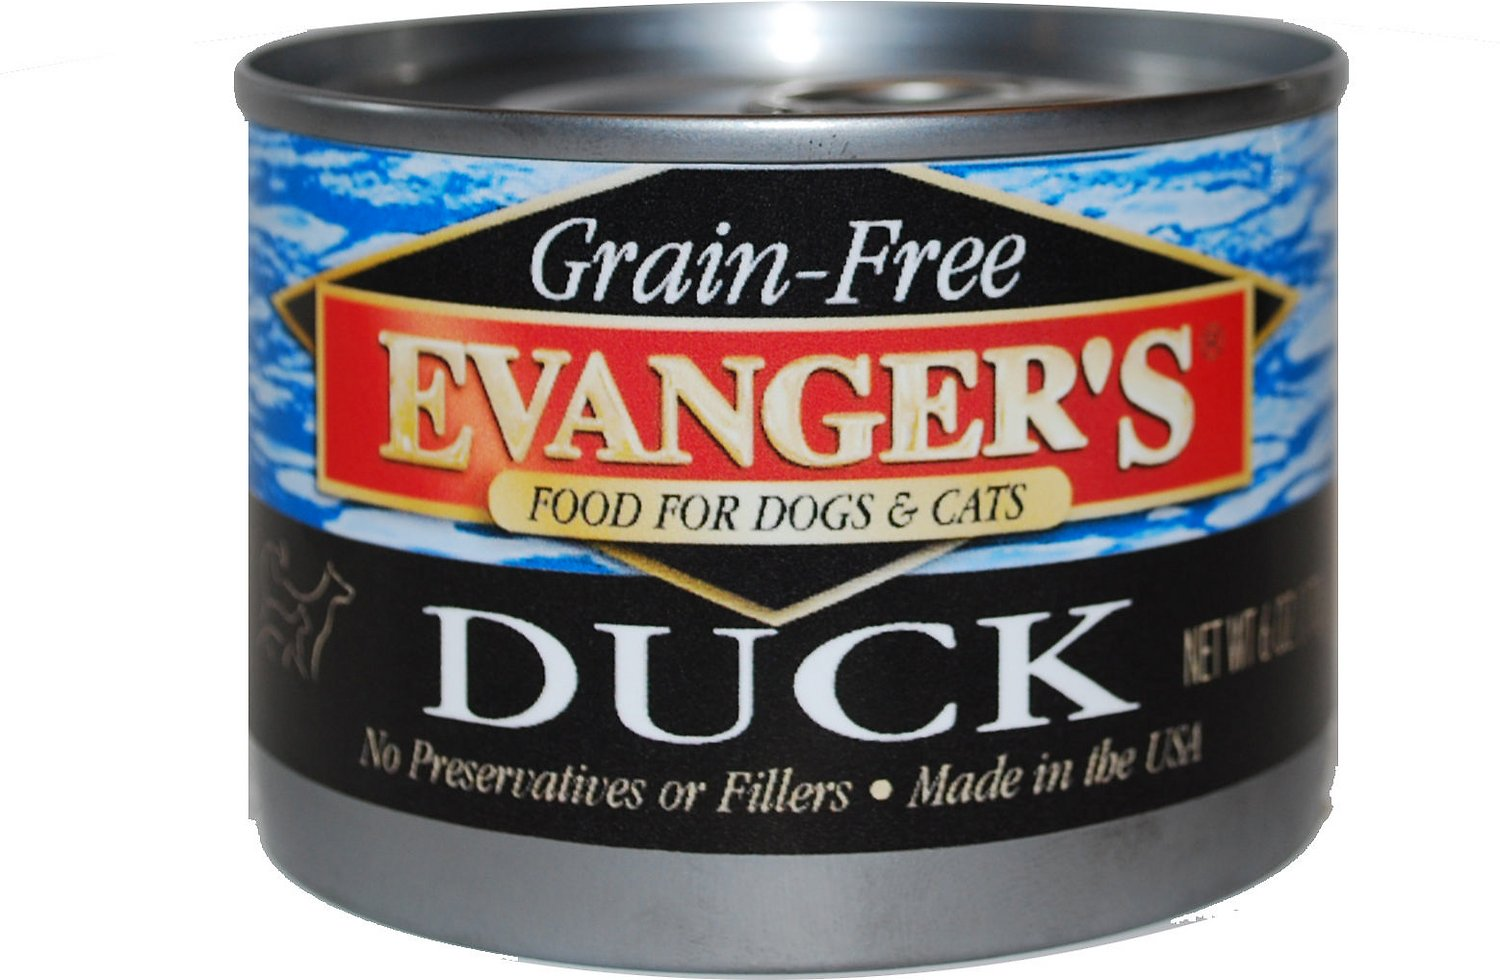 Evanger's Grain-Free Duck Canned Dog & Cat Food Image